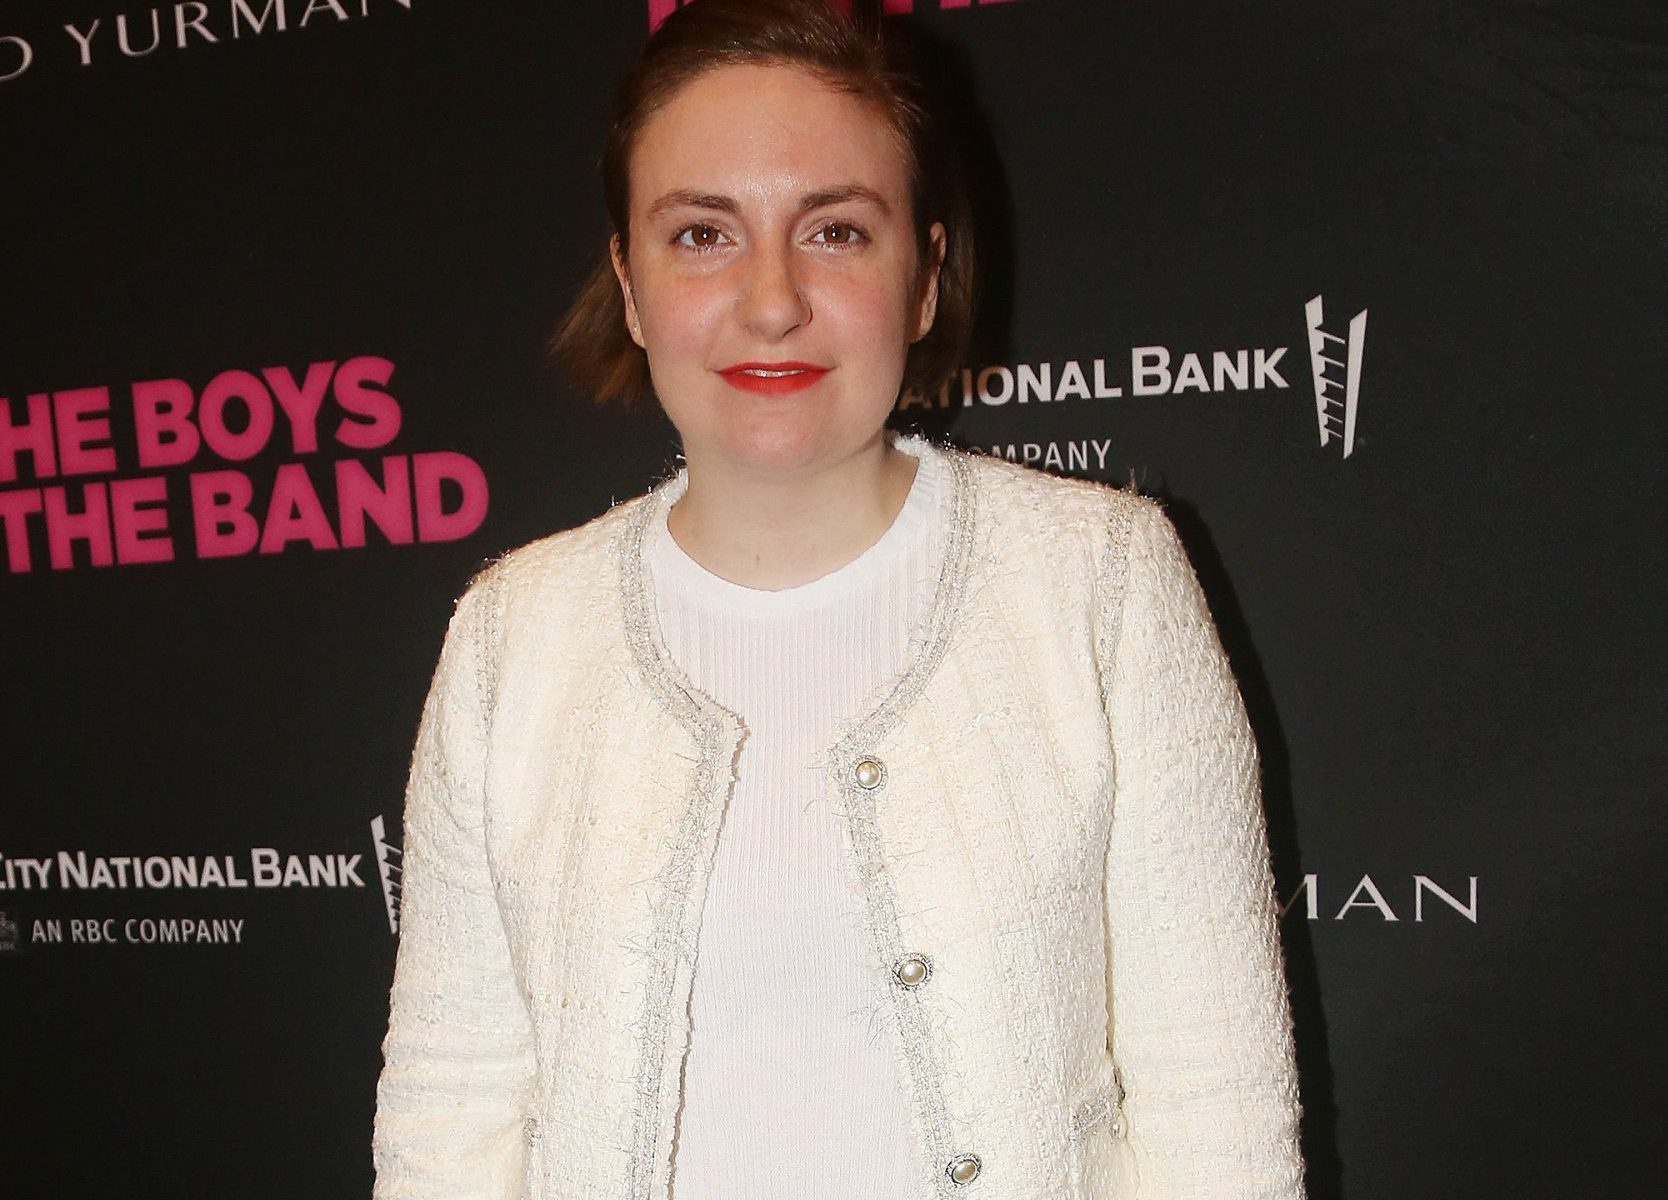 Lena Dunham celebrates six months sober after getting addicted to anti-anxiety medication